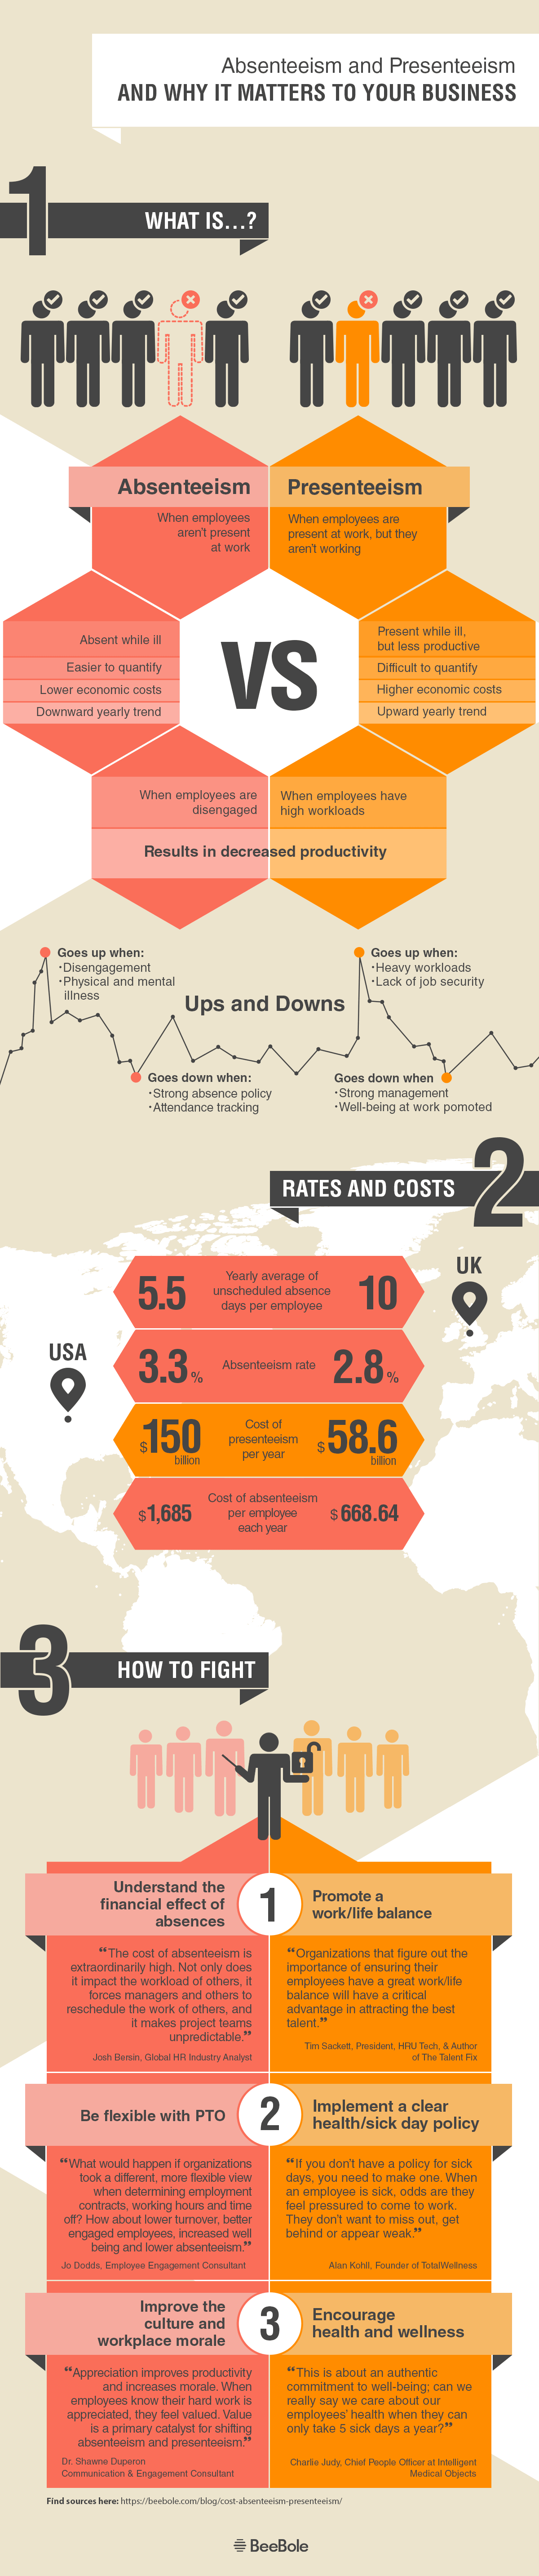 This infographic looks at the cost of absenteeism and presenteeism in the workplace in the U.S. and the UK.